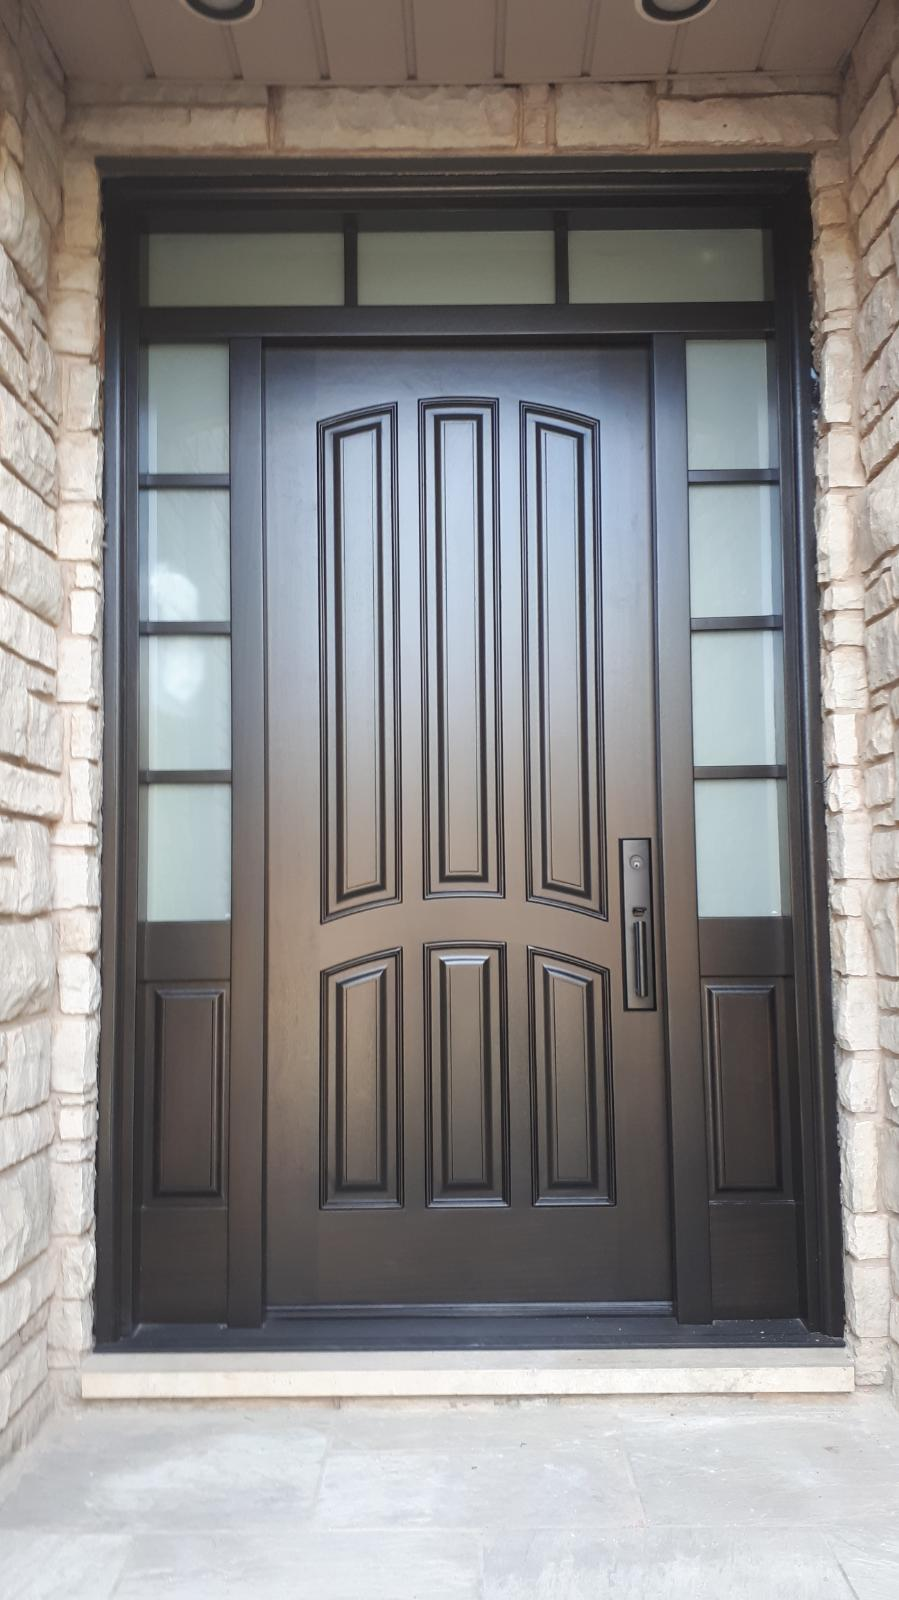 """""""Work hard in silence let success be your noise"""" #SolidWood, #Doors, #Wood #Mahogany, #CustomMadeDoors, #EntryDoors.#DistinctiveLook, #FityourHome Made by #NorthwoodDoorsInc. Your best value and quality, #HandCraftedDoors. Every door #Manifactured by us has our corporate stamp - a testament to our dedication and passion in #Woodwork. Let #NorthwoodDoorsInc. add to your home's #CurbAppeal by enhancing the quality and beauty of your #EntryDoors. Visit our #Showroom to envision how one of our many #doors on display might look like at your #Home. Contact us today Tel. 416-253-2034, info@northwooddoors.com, www.northwooddoor.com — in Toronto, Ontario"""